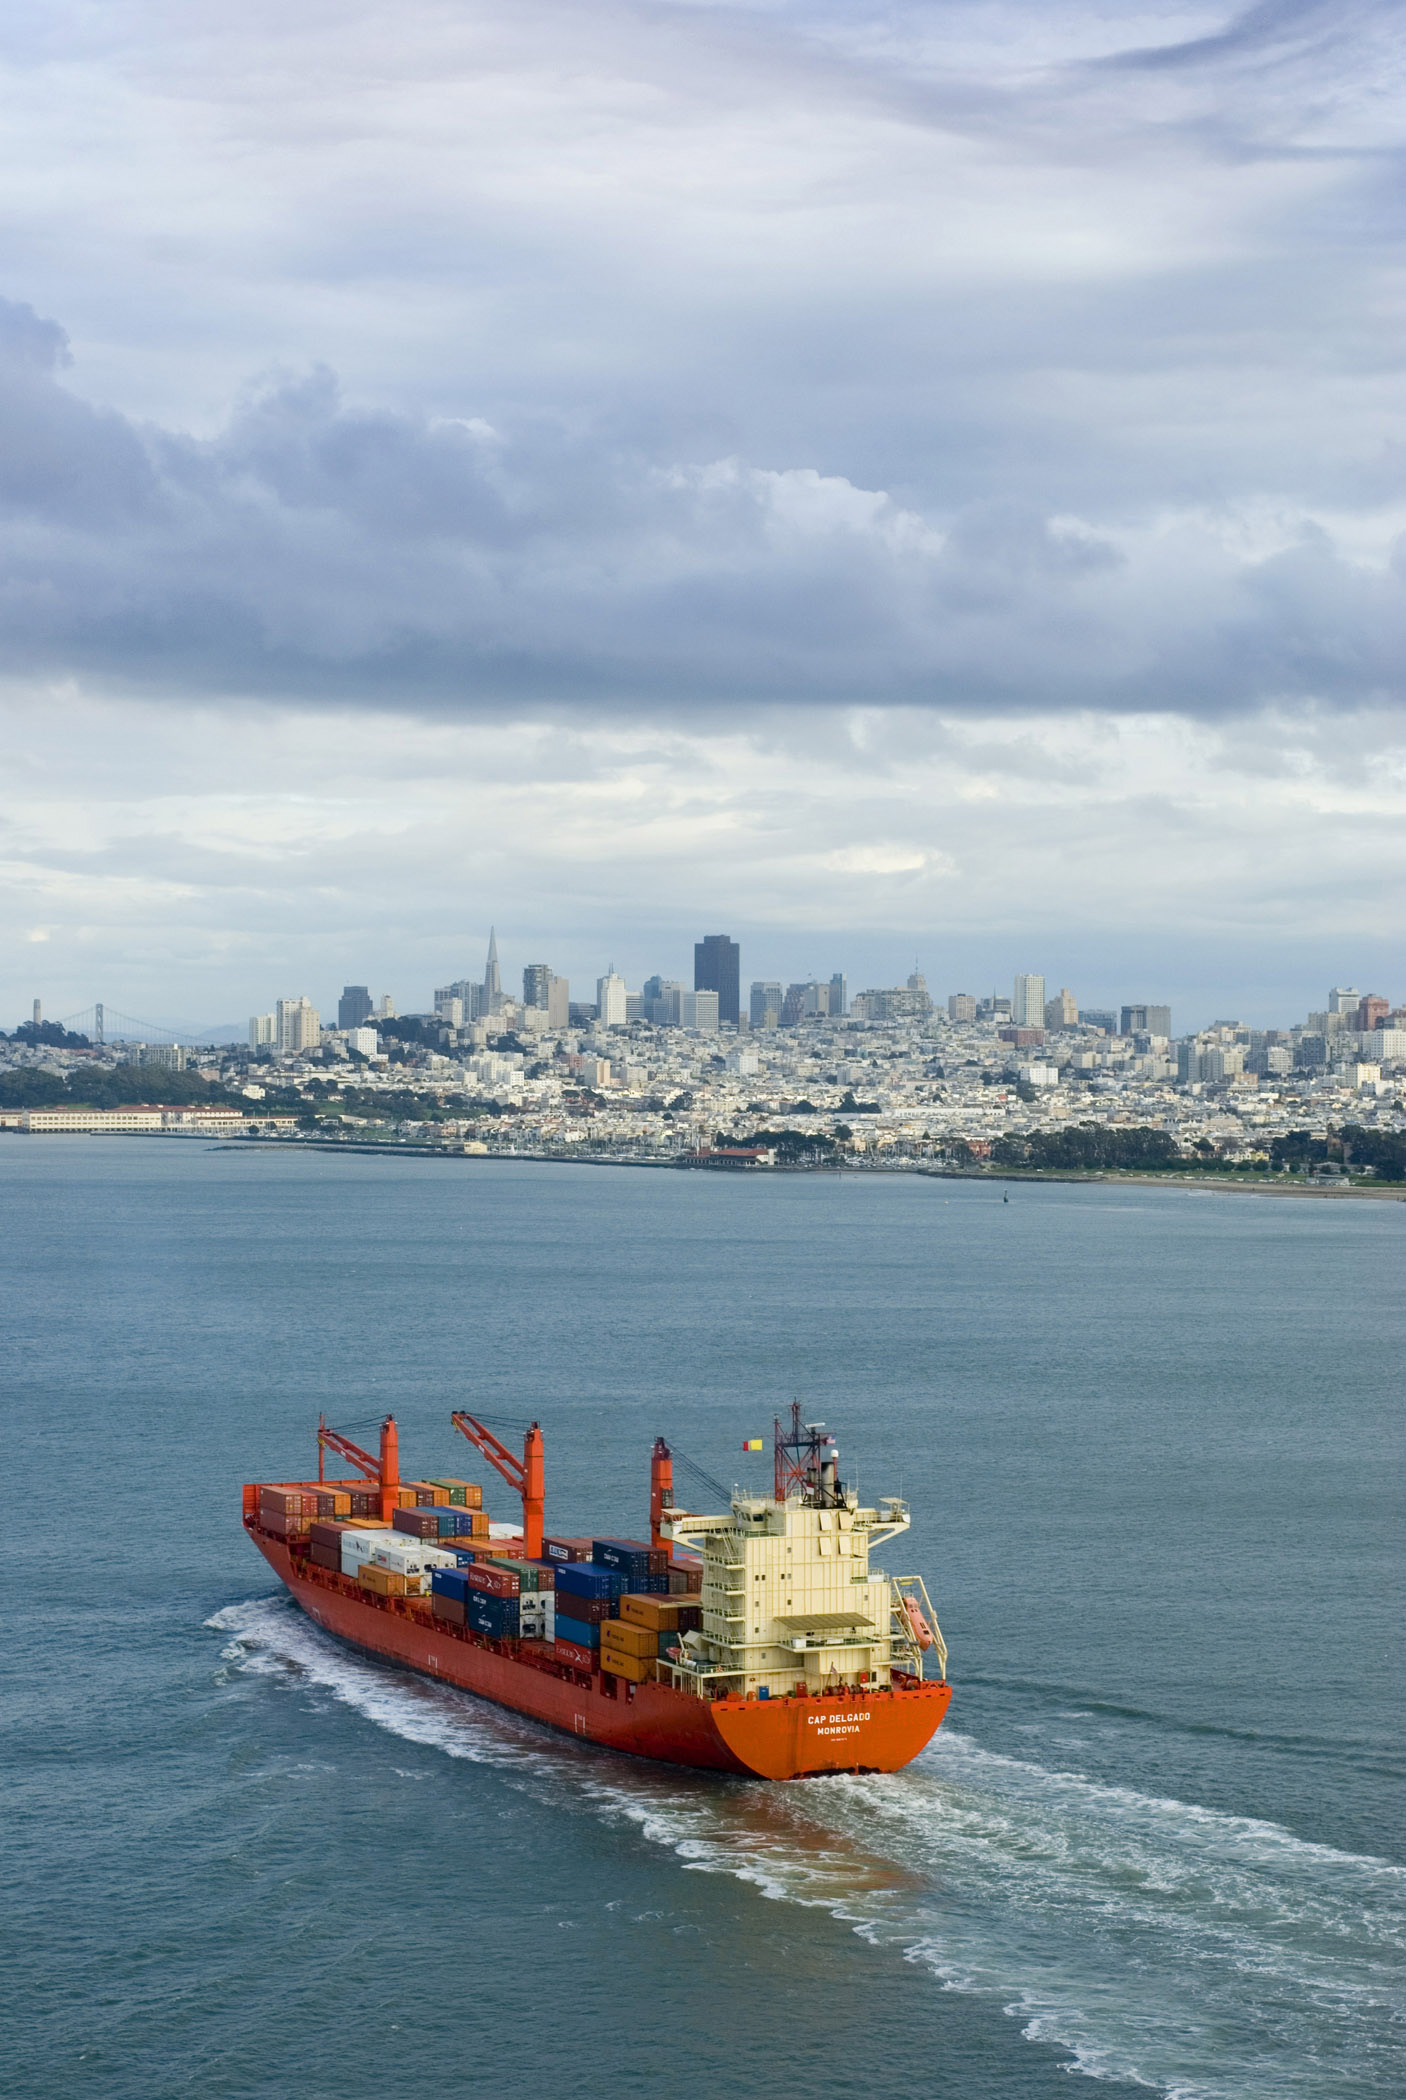 Container ship entering San Francisco bay laden with international cargo containers with the city skyline in the distance